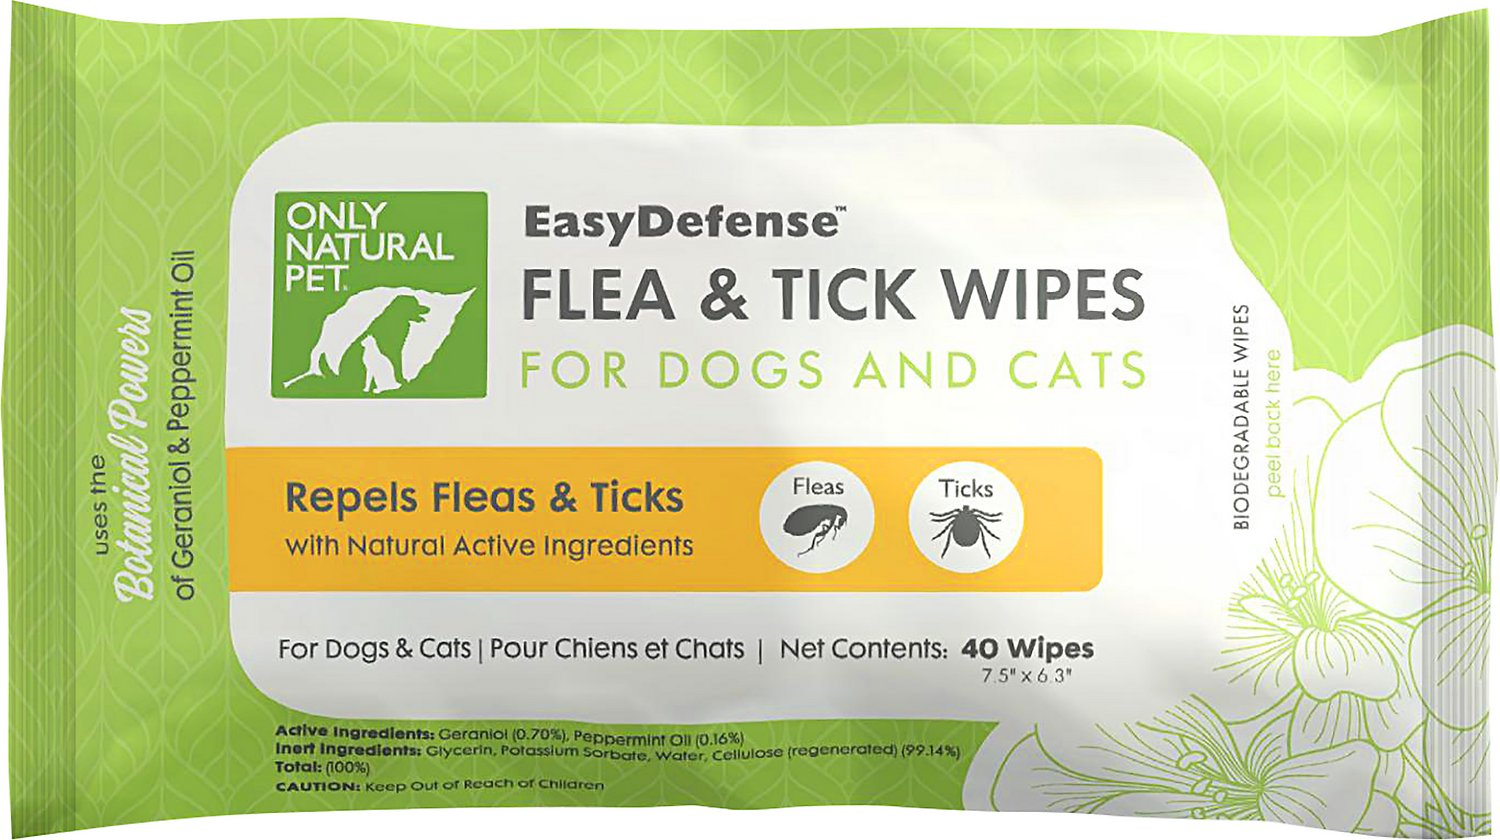 Only Natural Pet EasyDefense Flea & Tick Wipes for Dogs & Cats, 40 count